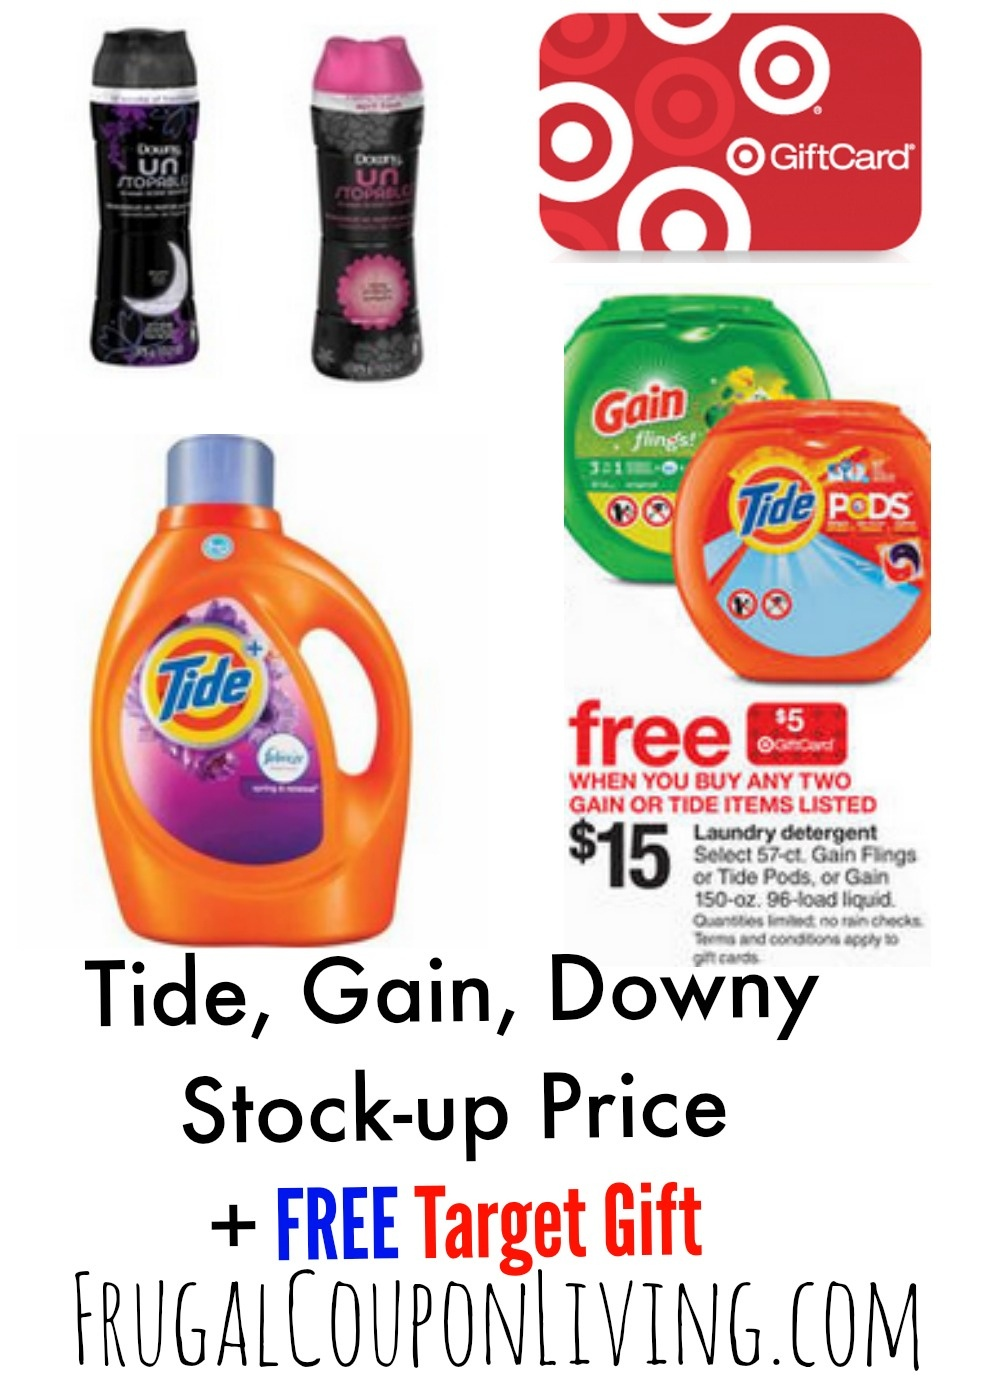 Target Laundry Detergent Deals + Tide & Downy Printable Coupons - Gain Coupons Free Printable